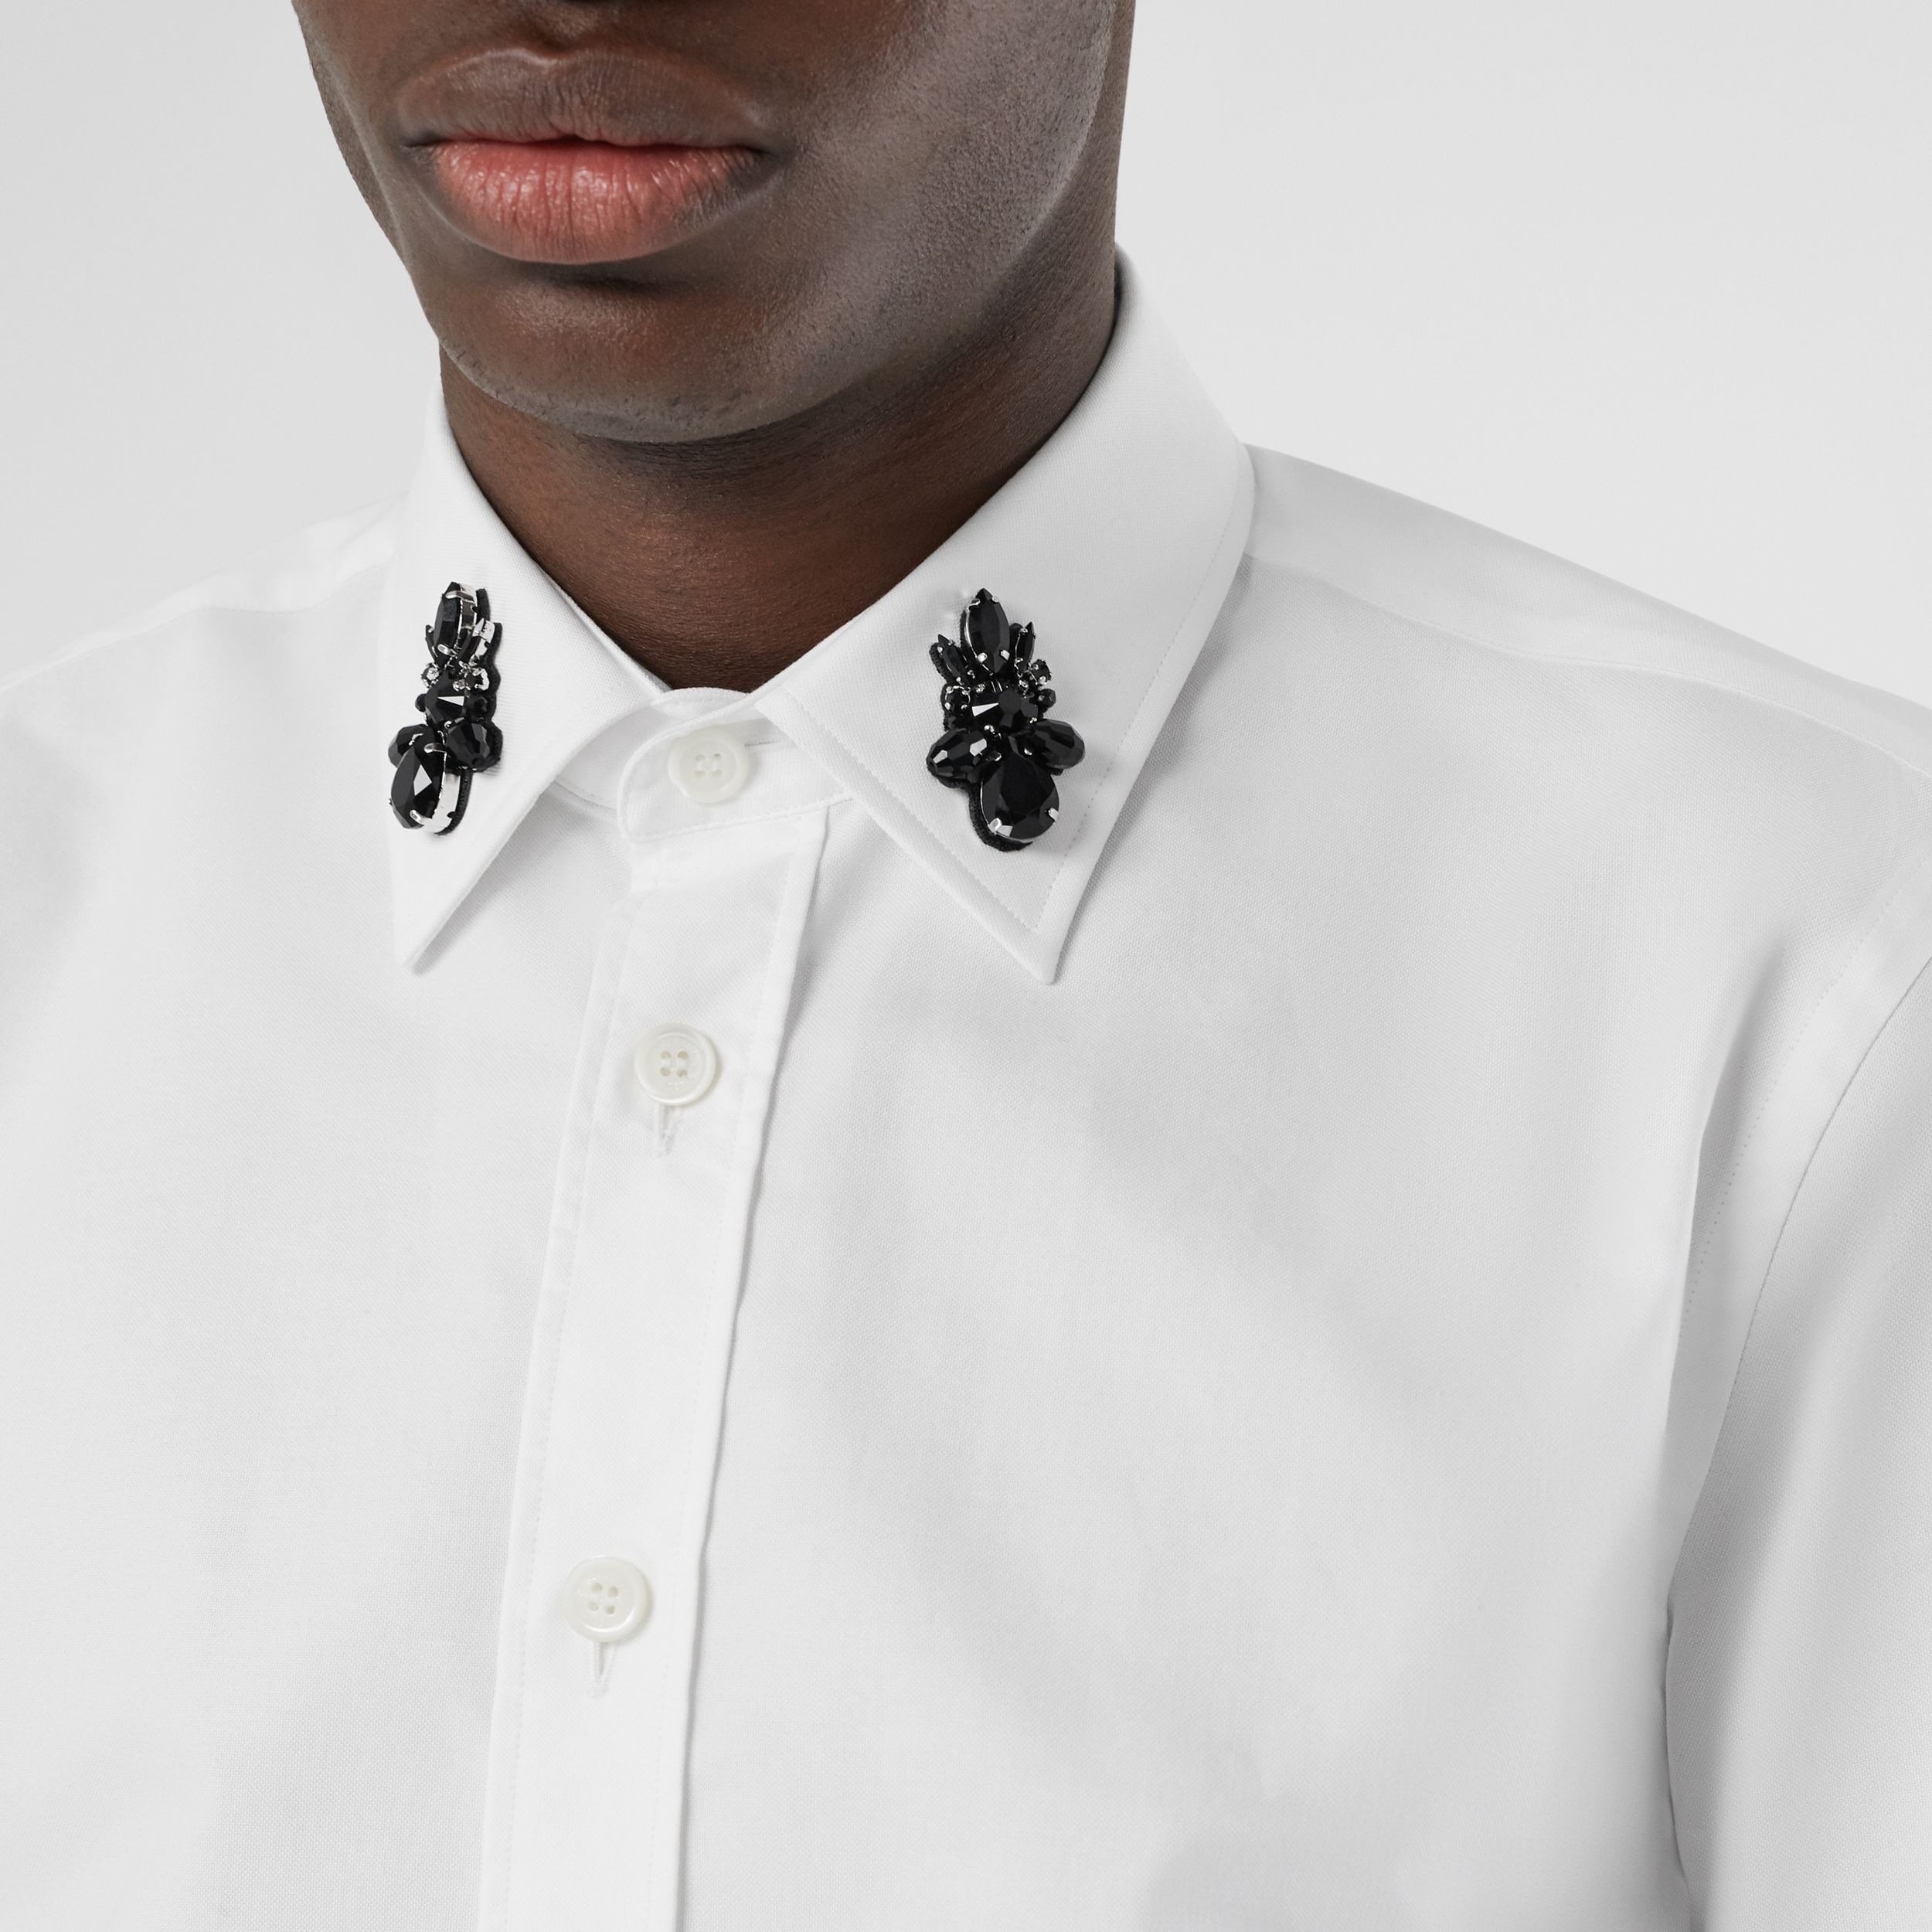 Classic Fit Crystal Detail Cotton Oxford Dress Shirt in White - Men | Burberry Hong Kong S.A.R. - 2